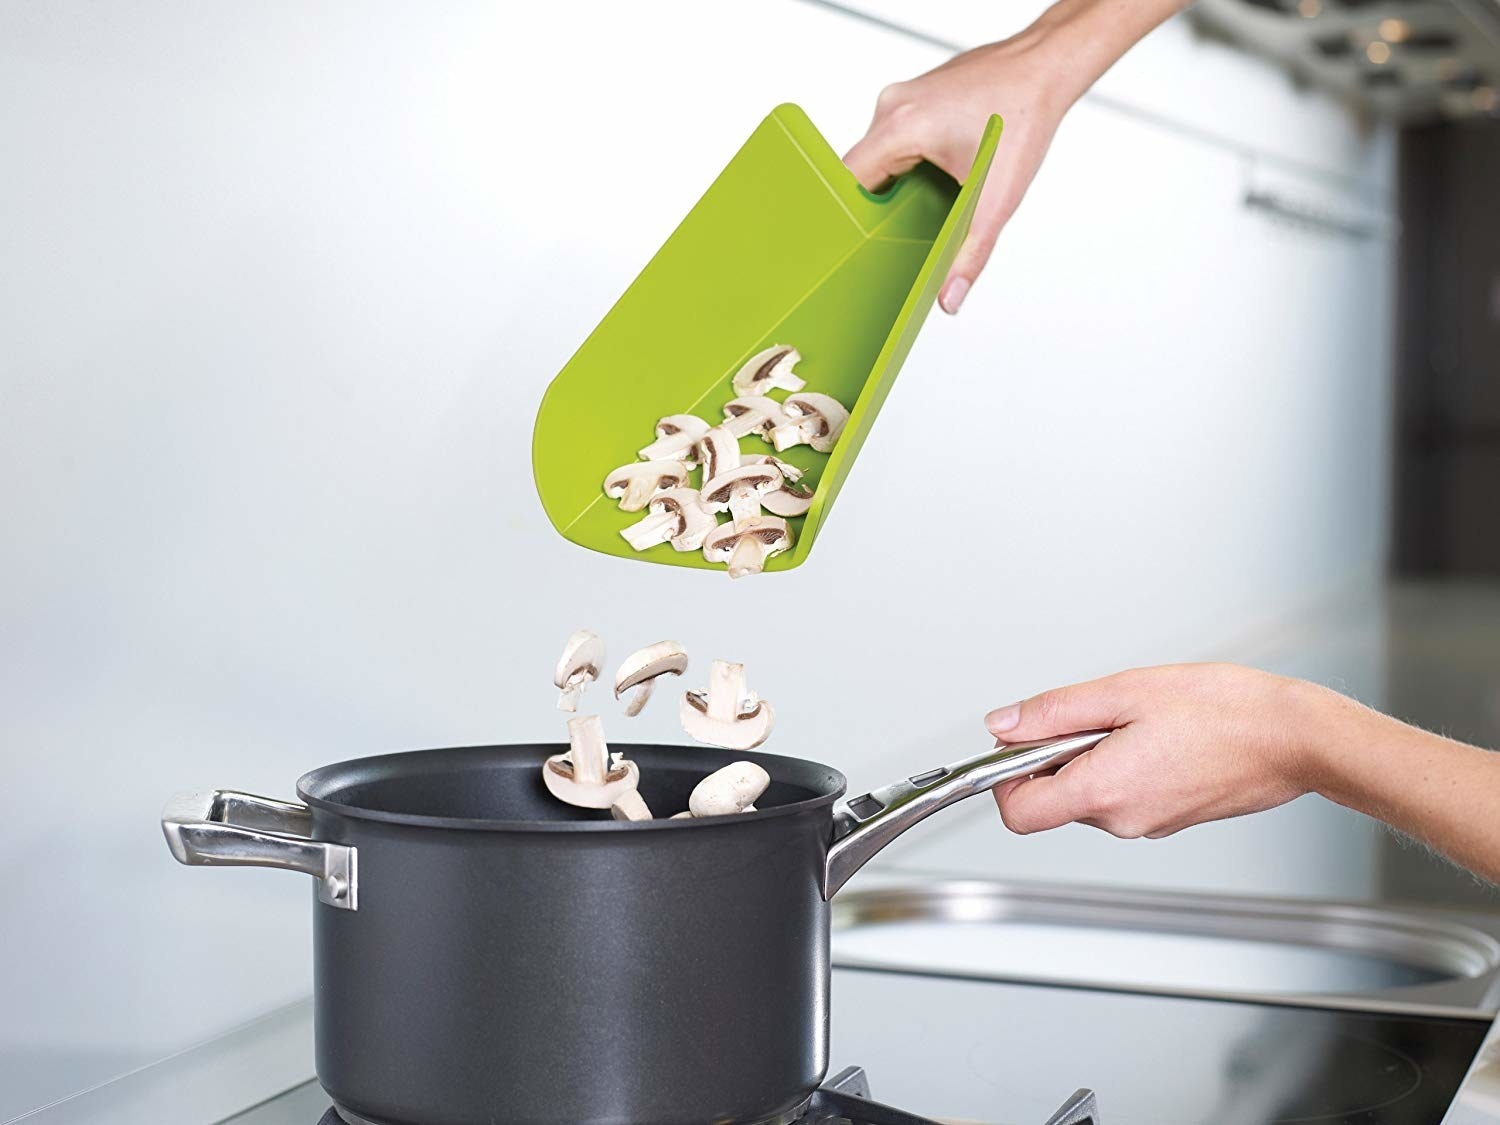 Foldable cutting board being used to transfer mushrooms into pot